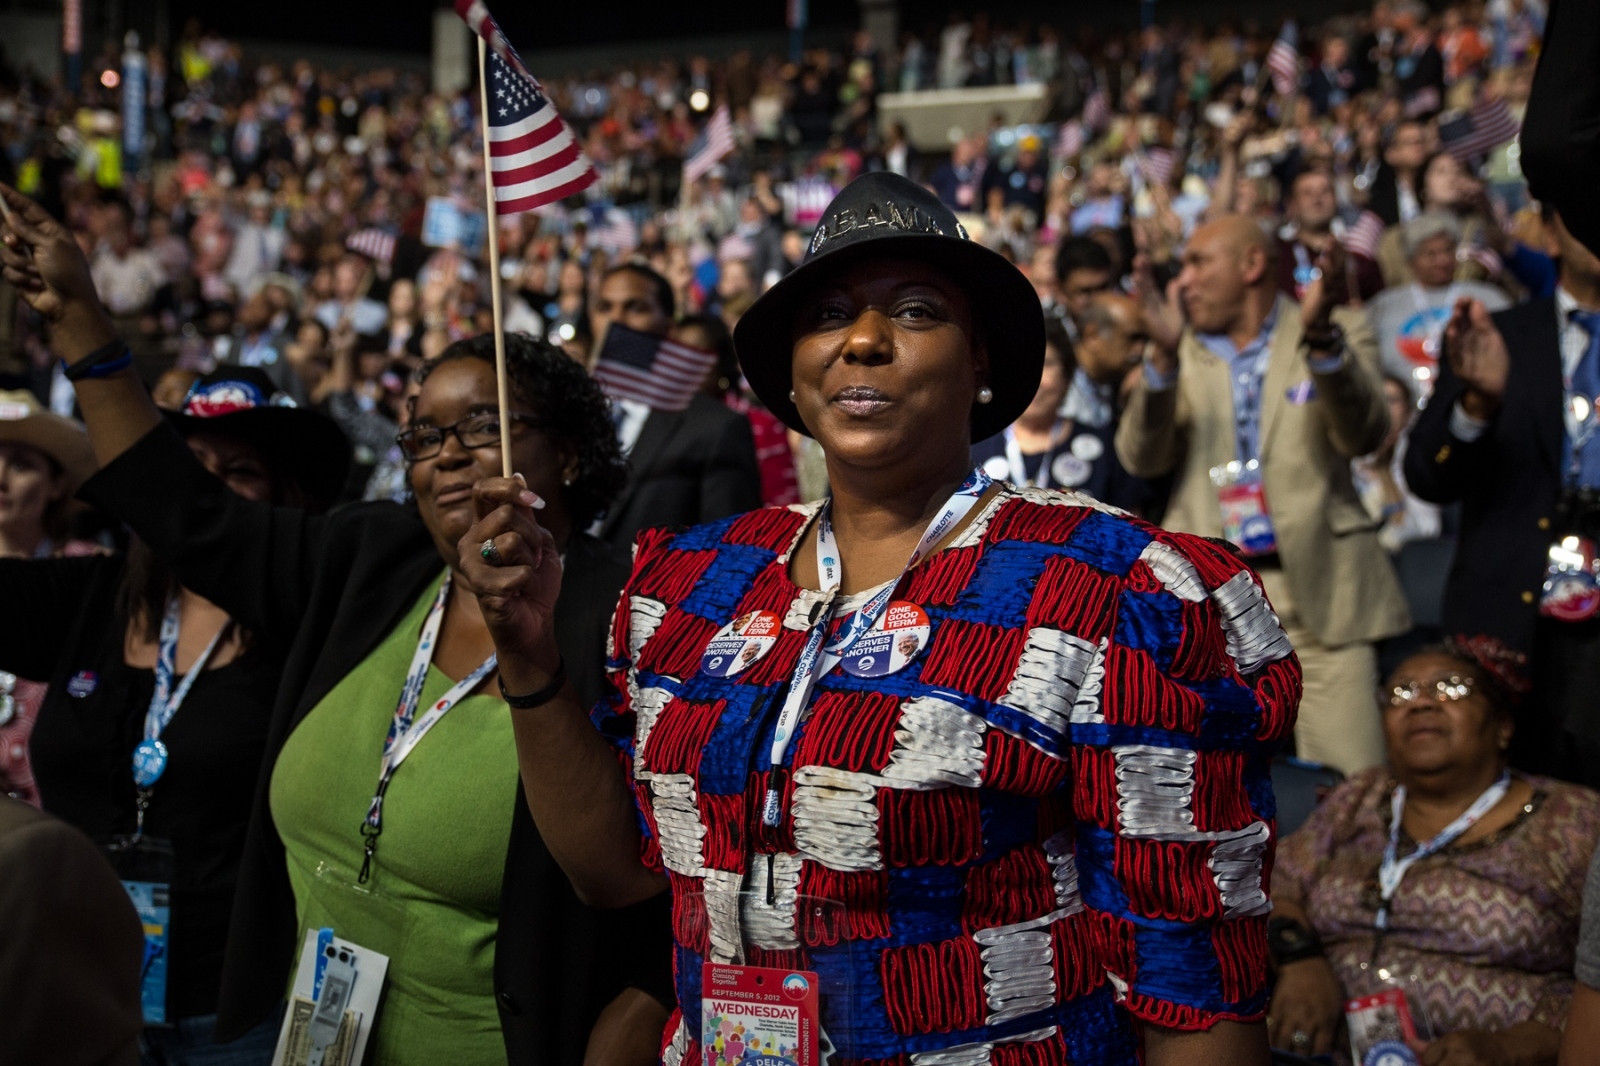 Patriotic fashion is in at the Democratic National Convention (DNC).